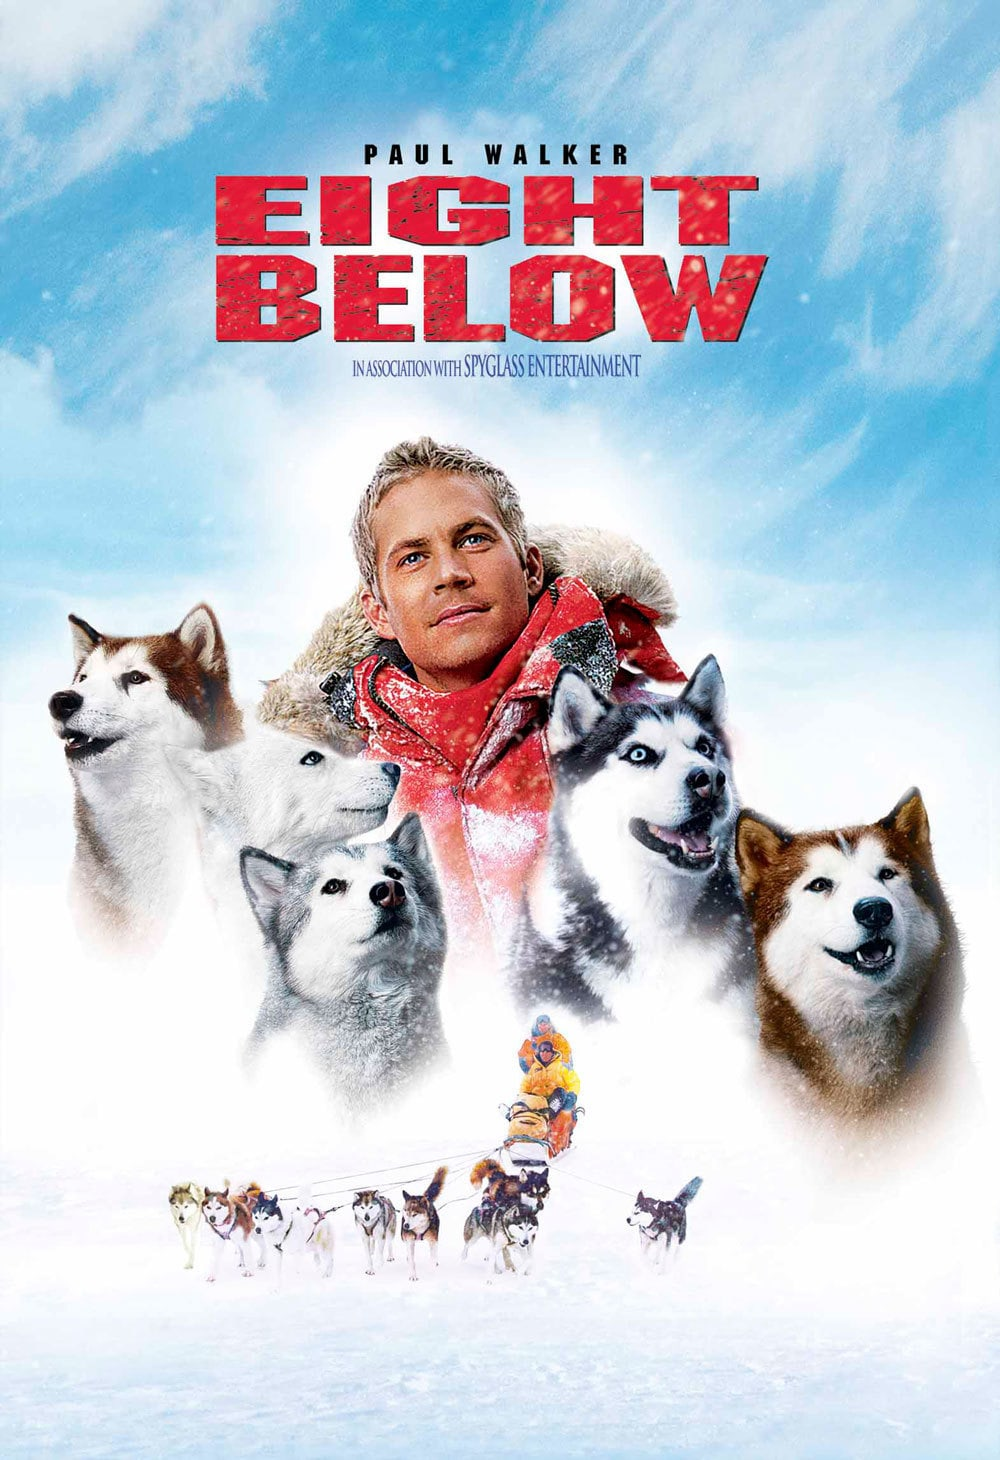 Disney Sled Dog Movie